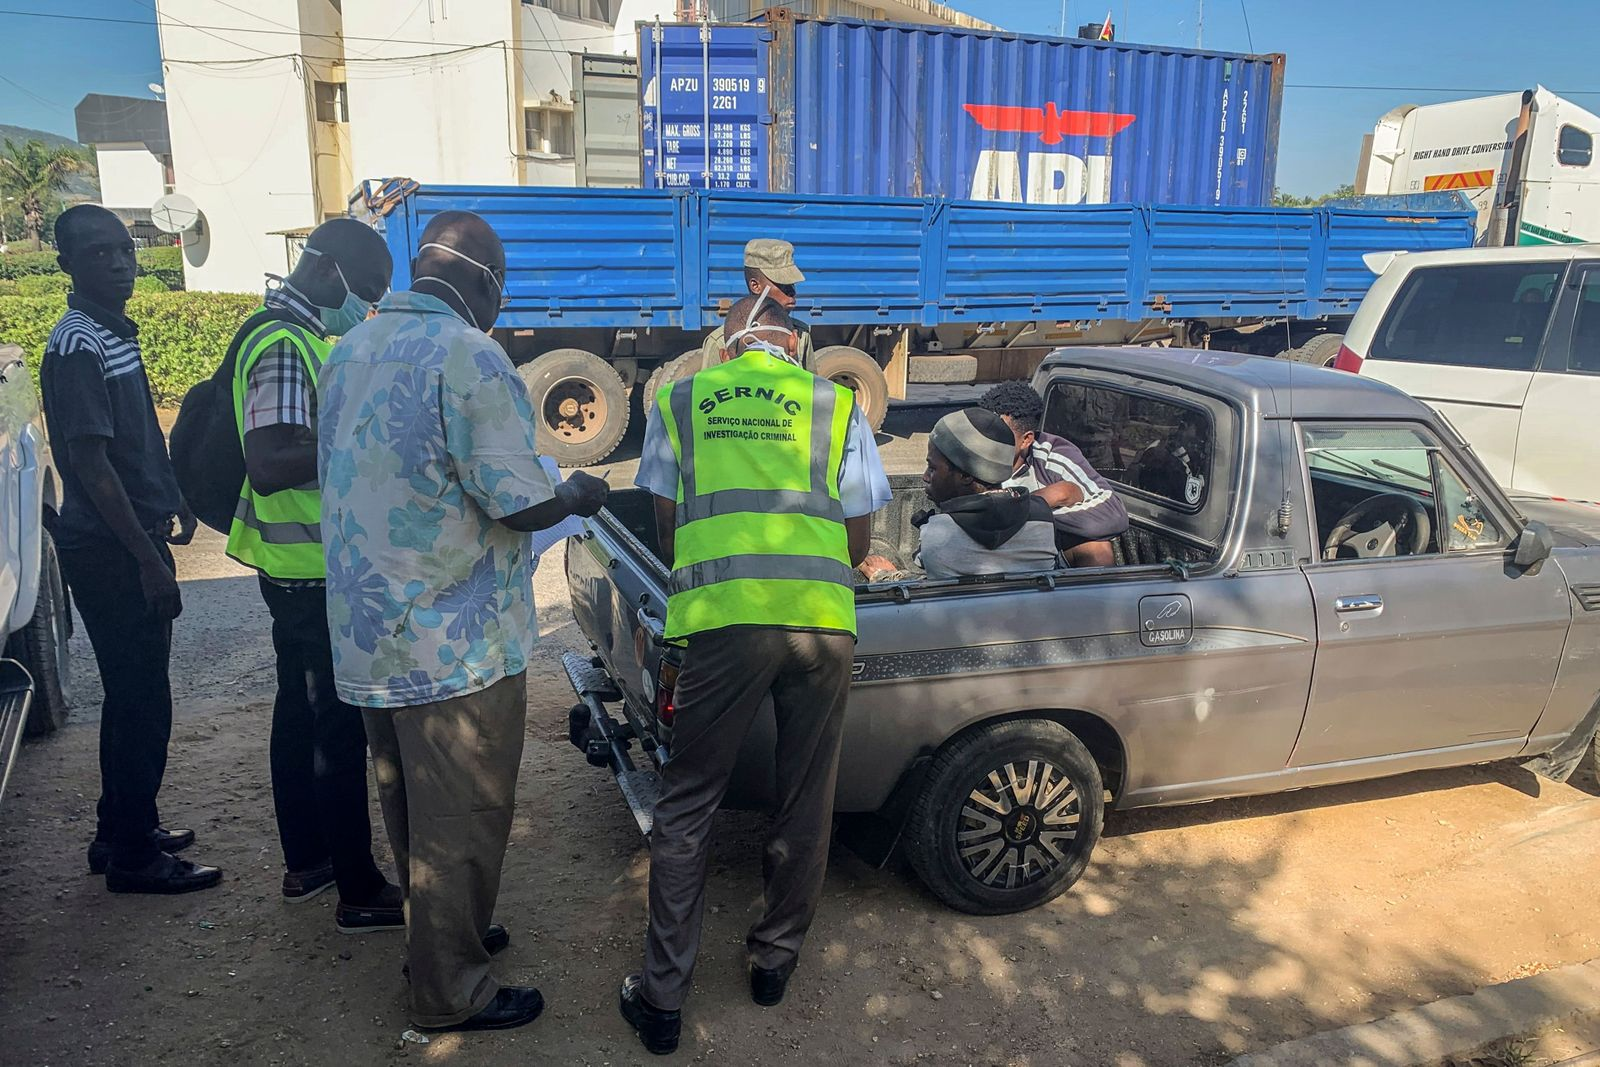 Police finds 64 dead, 14 survivors in truck container from Malawi, Maputo, Mozambique - 24 Mar 2020